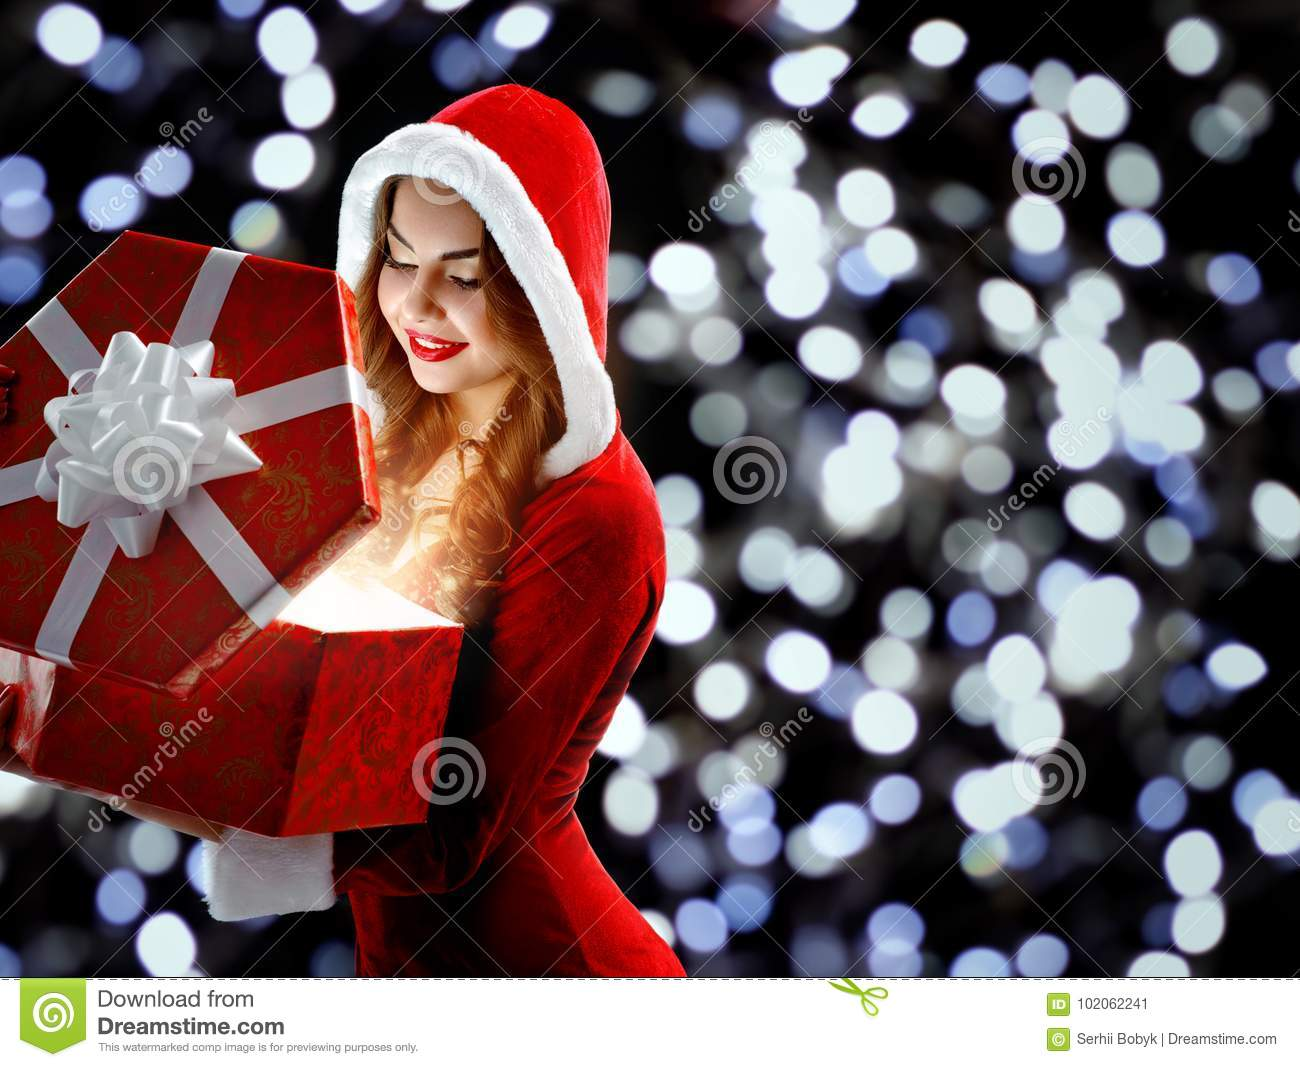 Girl In The Red Suit Holding A Gift For New Year 2018,2019 Stock ...